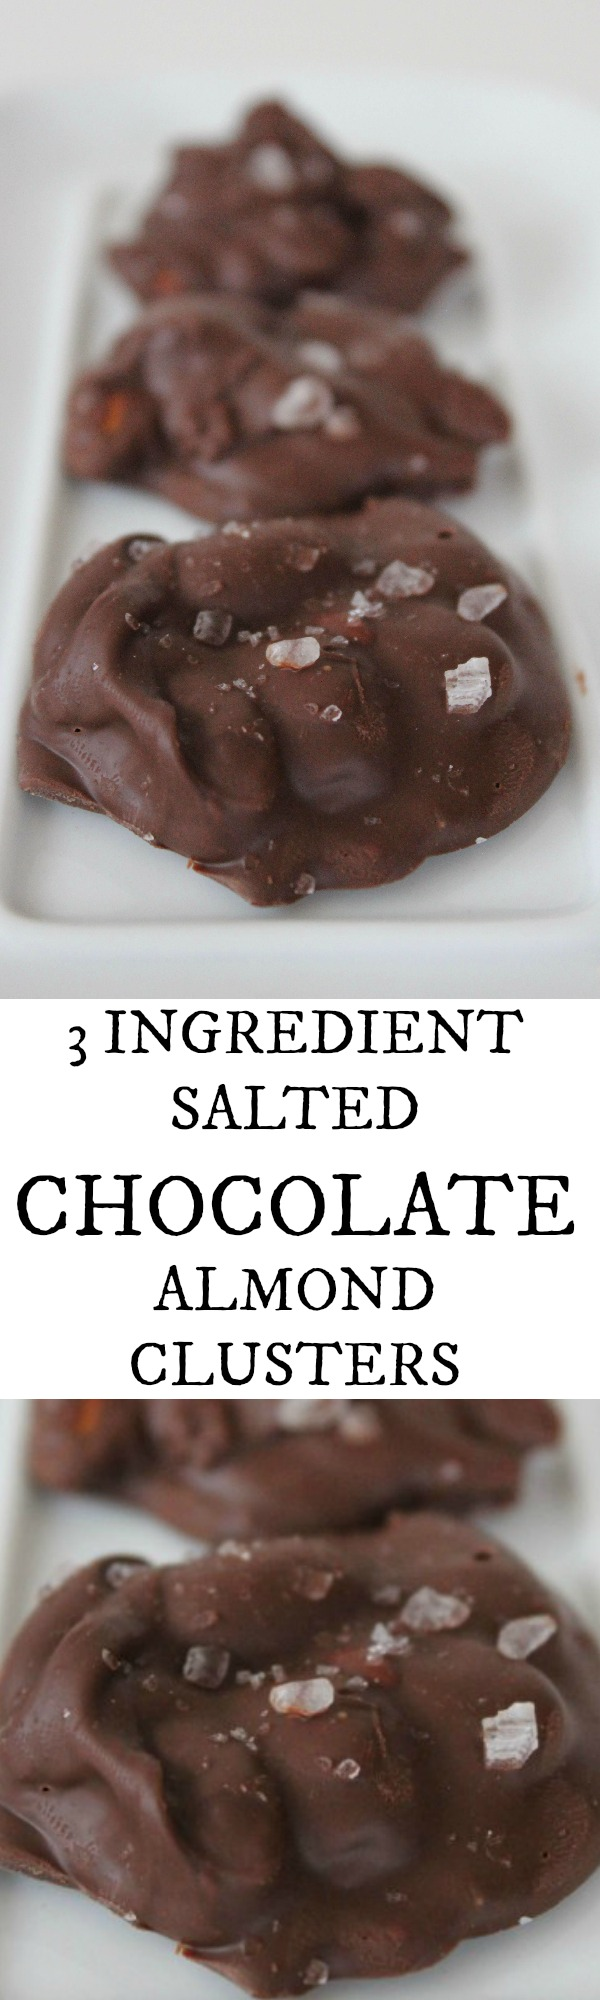 3 Ingredient Salted Chocolate Almond Clusters